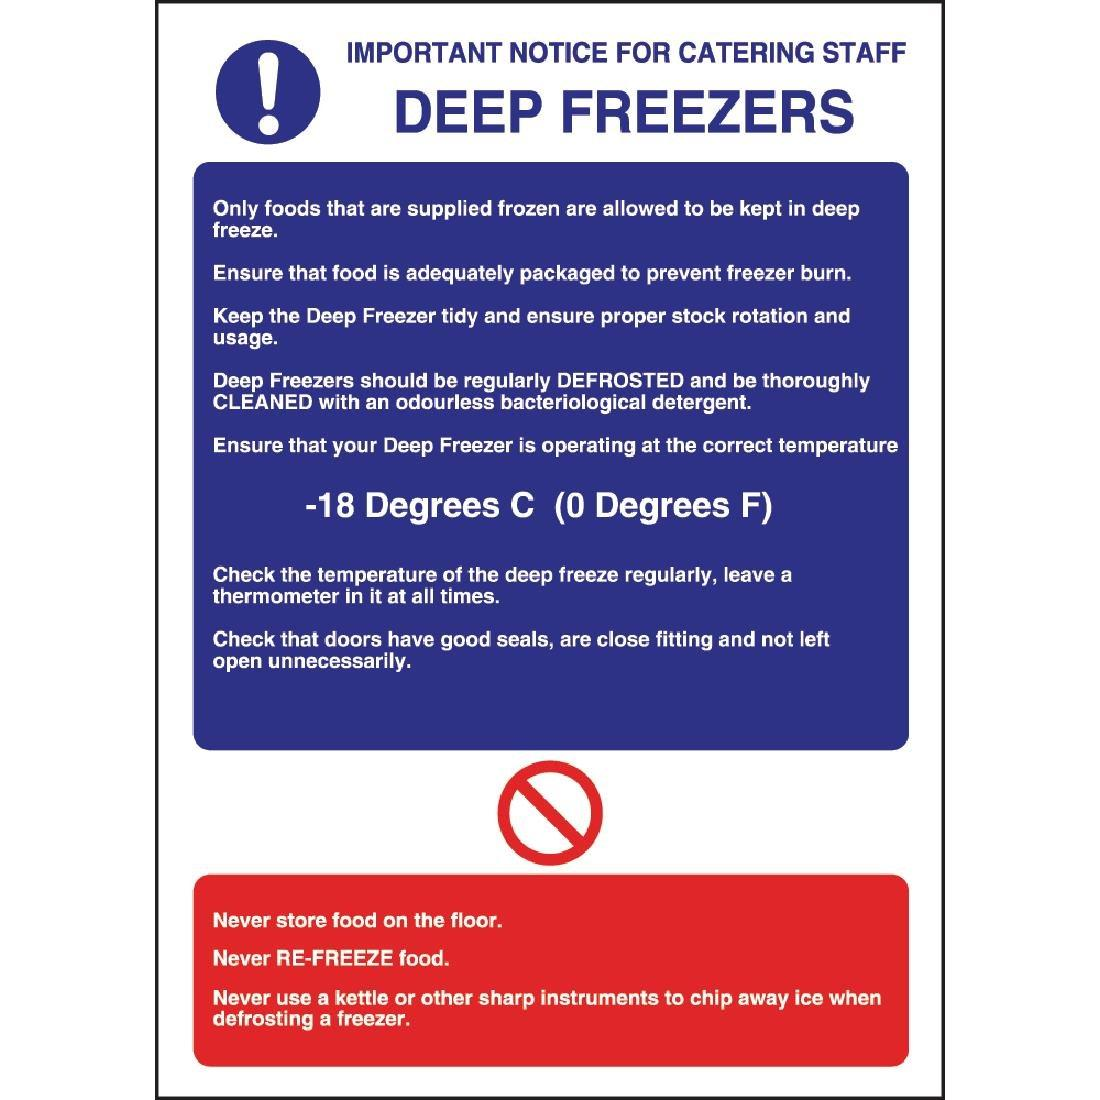 W195 - Deep Freezer Guidelines Sign